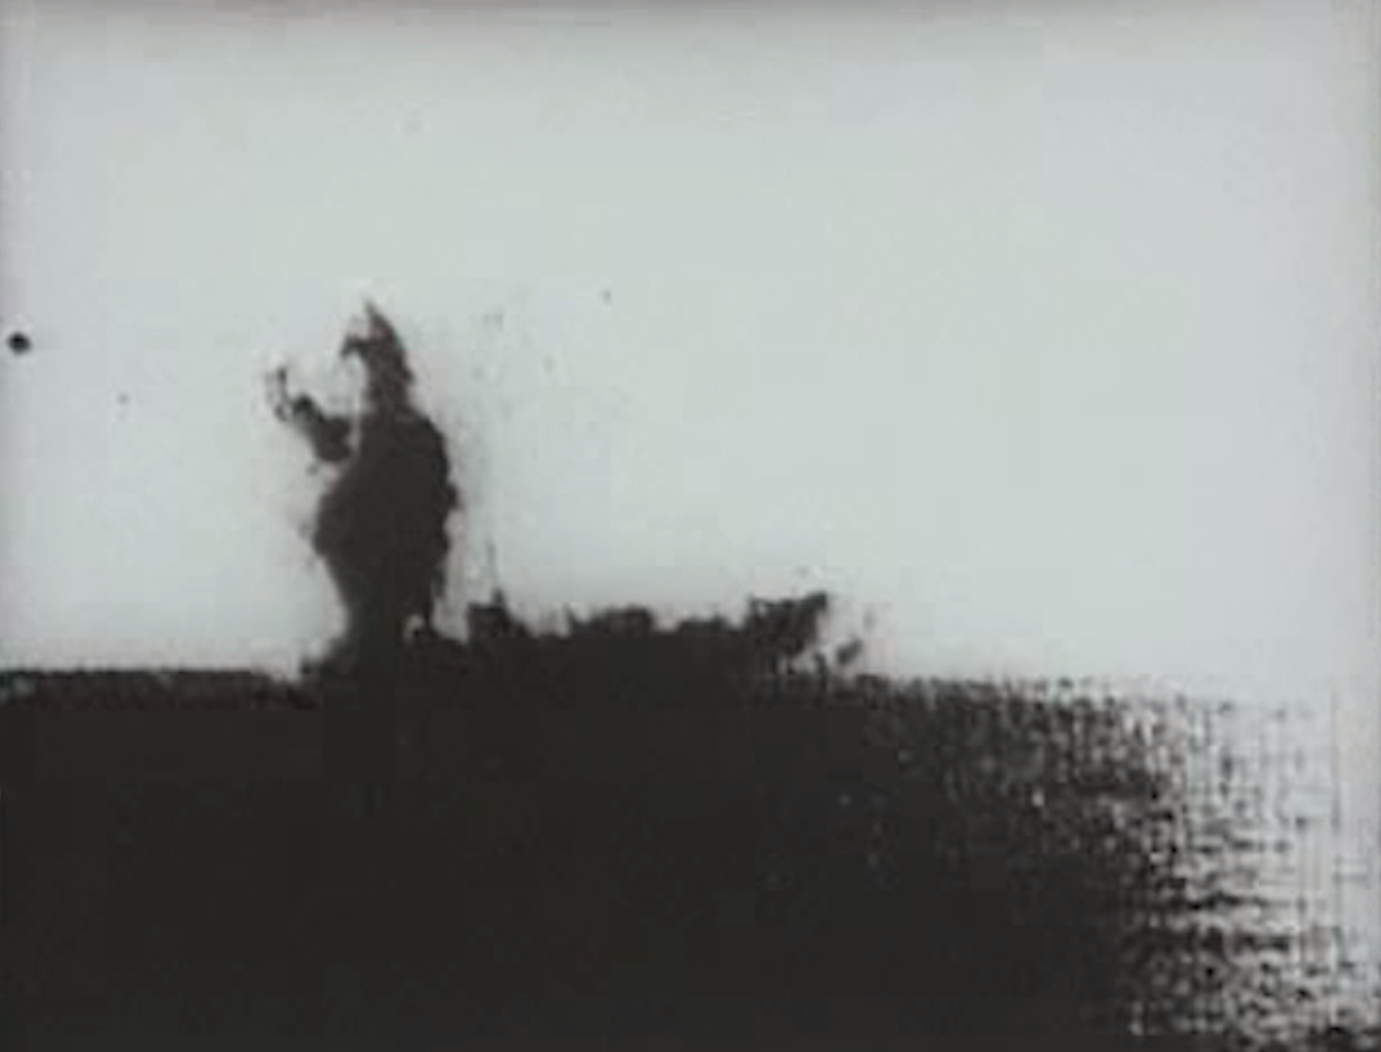 Video art by Julianne Aguilar using historic wartime footage